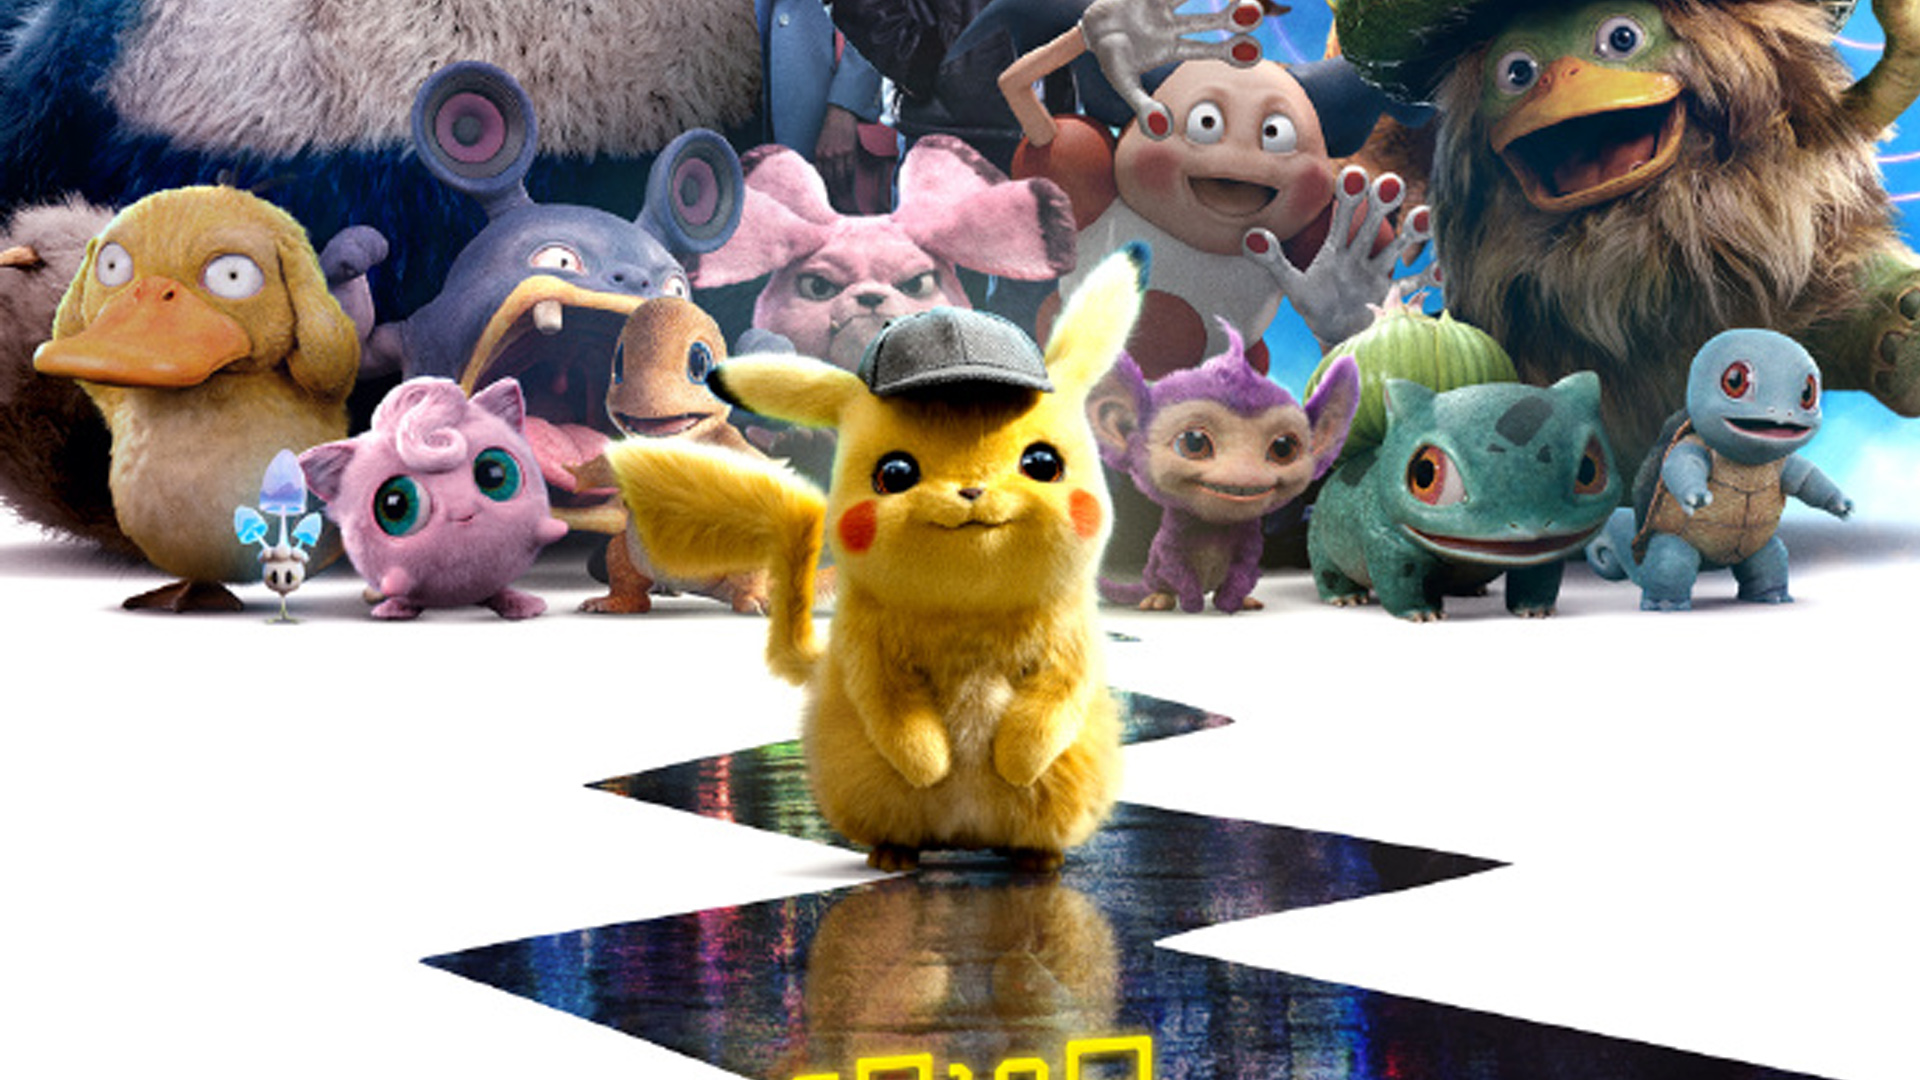 The New Detective Pikachu Chinese Posters Are Colorful And They Increase The Interest Of Fans To The Upcoming Movie